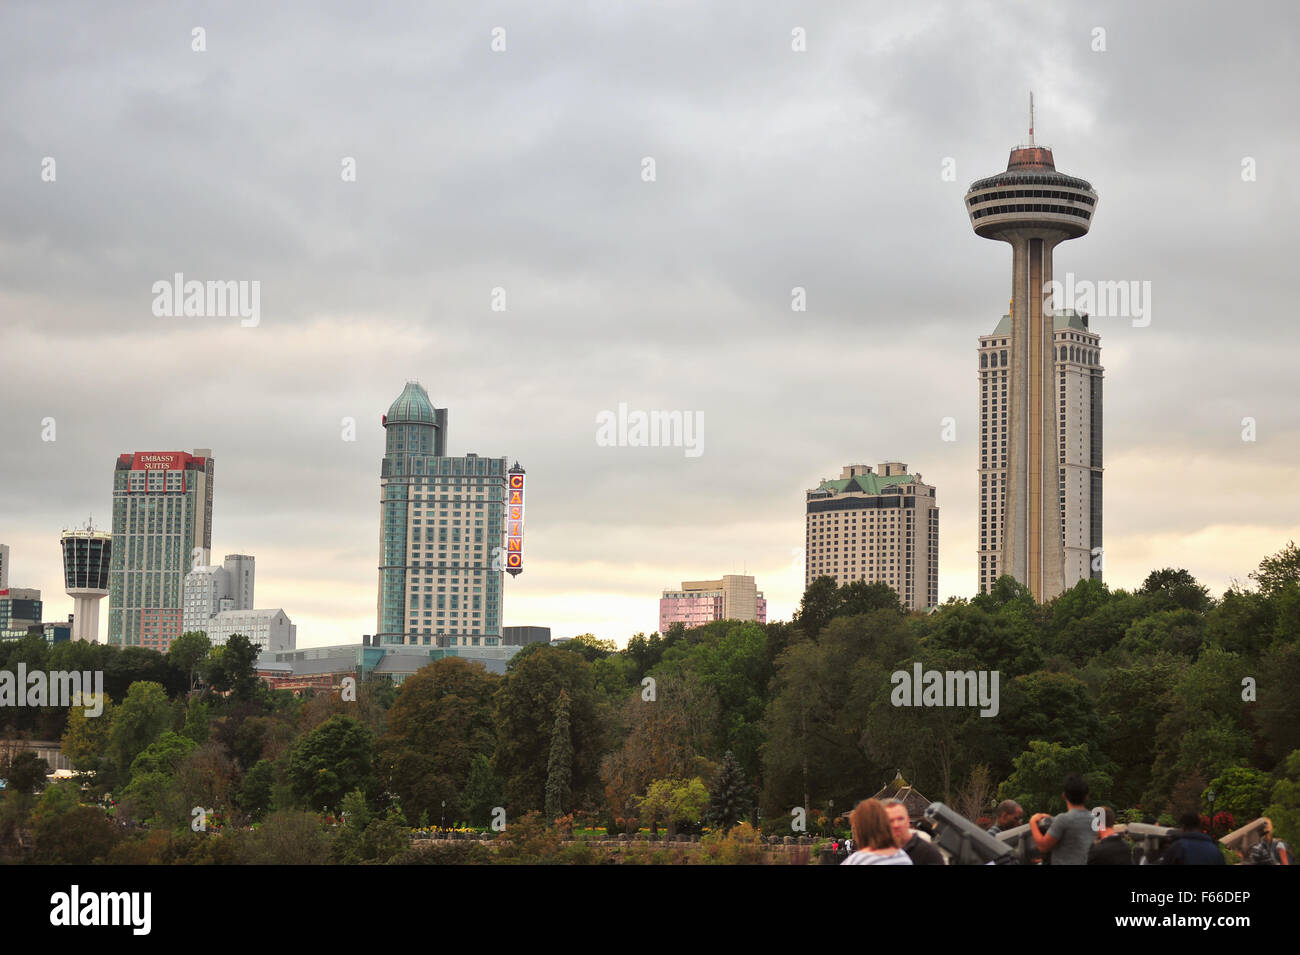 Tall buildings in the Canadian city of Niagara Falls in Ontario